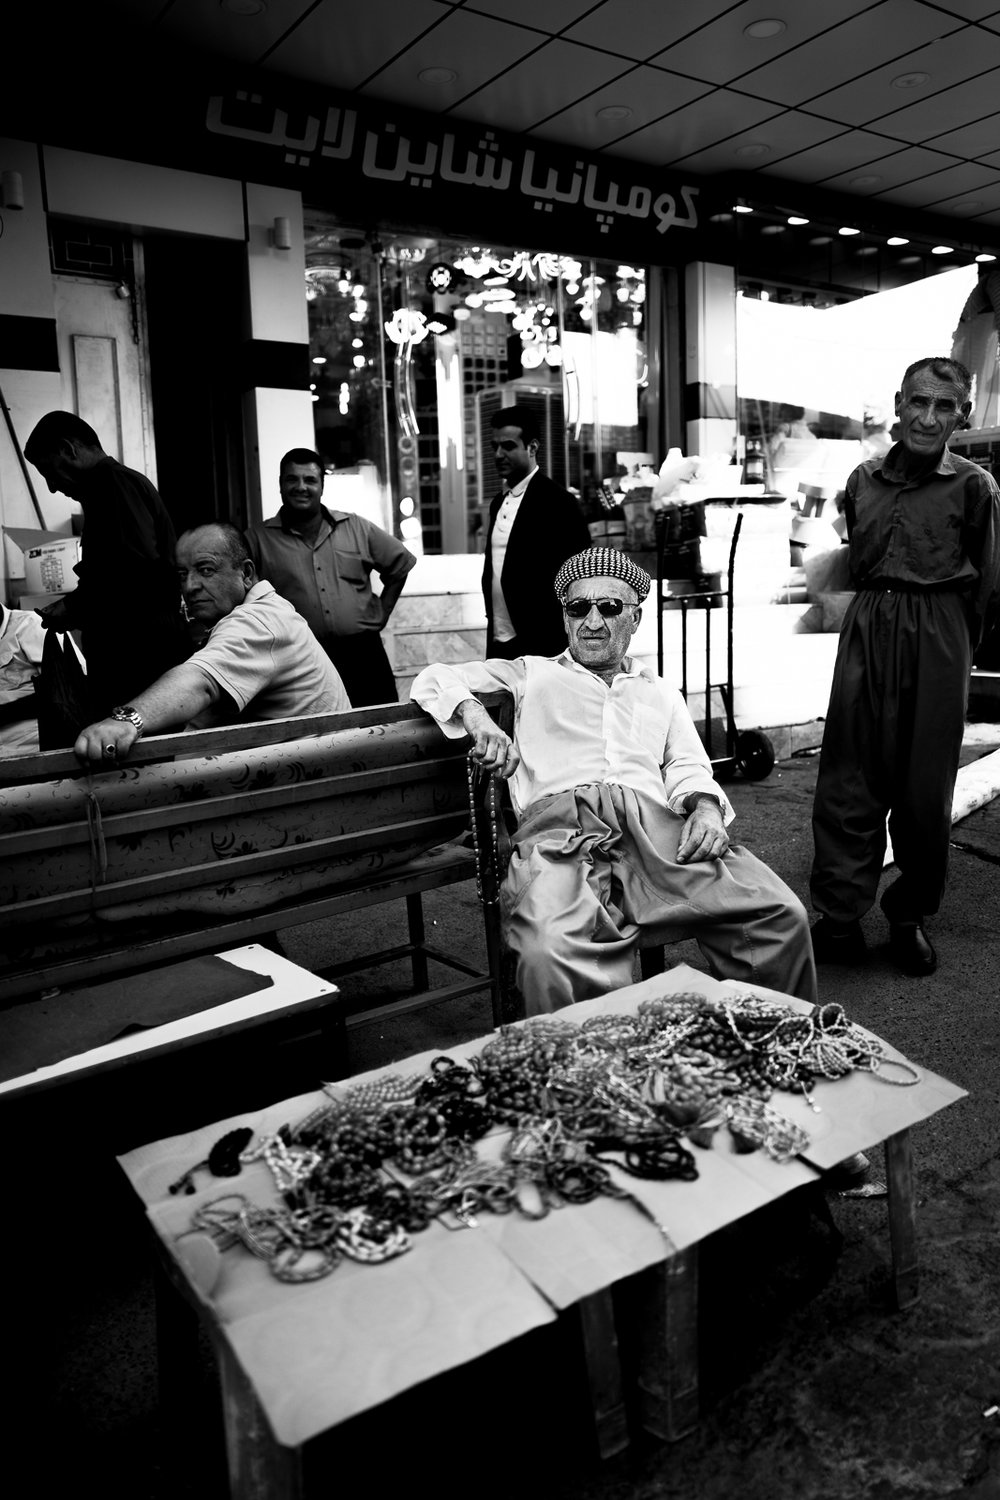 A man is selling rosaries on the streets of Douhk